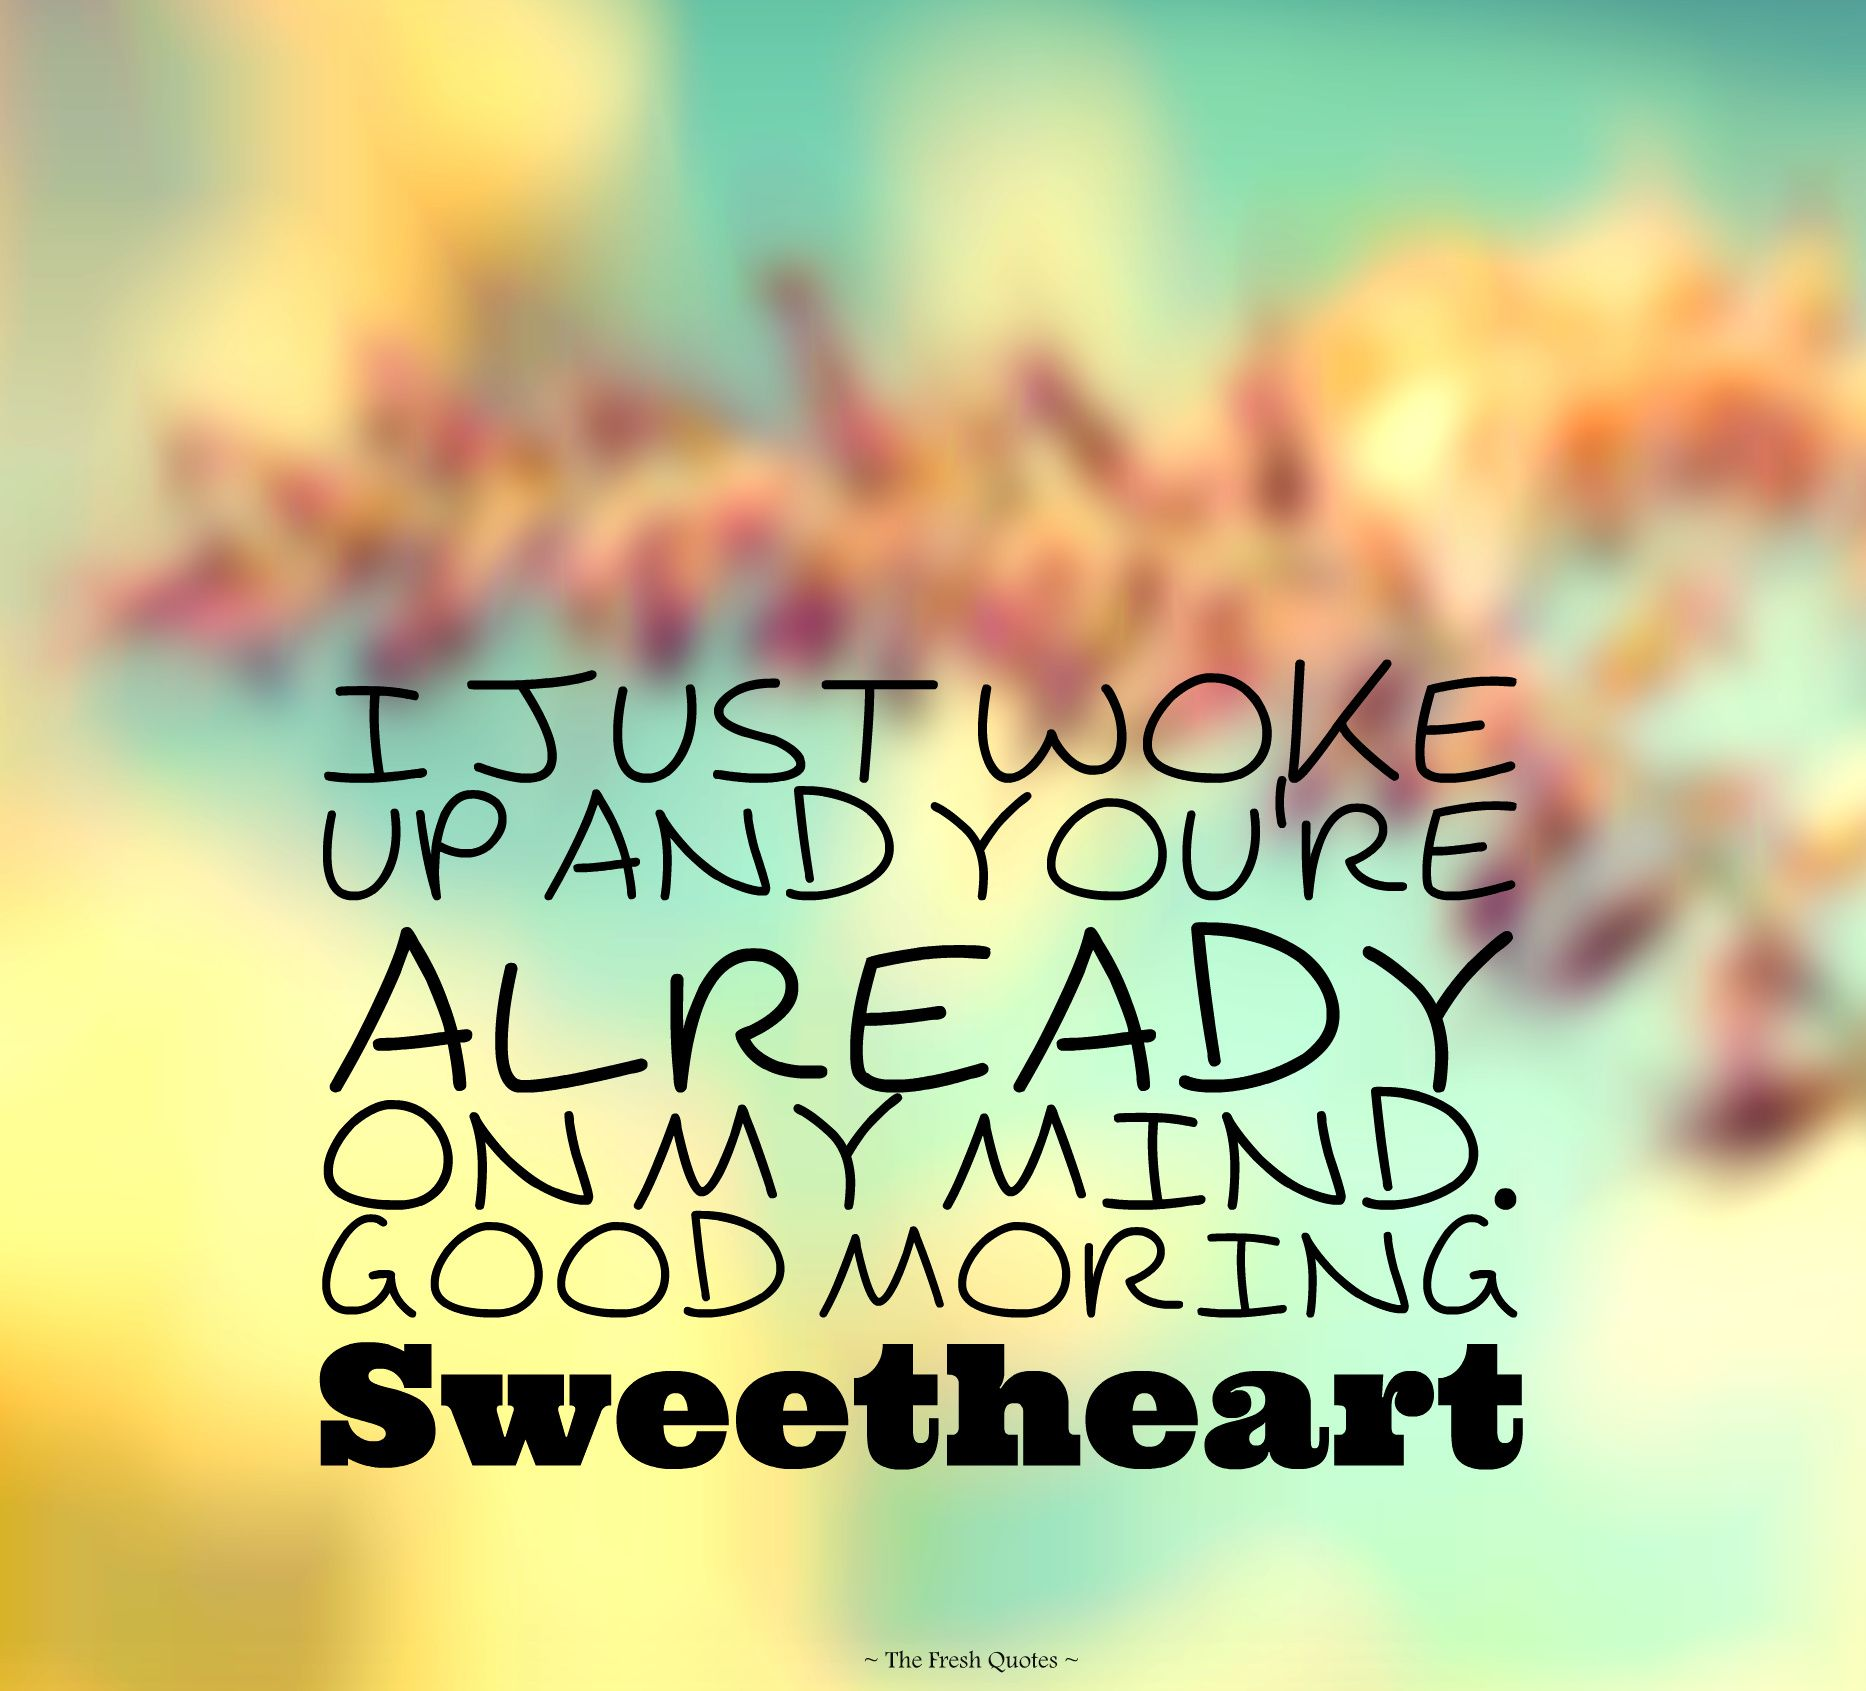 Good Morning My Love Quotes : good-morning-my-love-quotes Verses Pinterest Good morning and ...